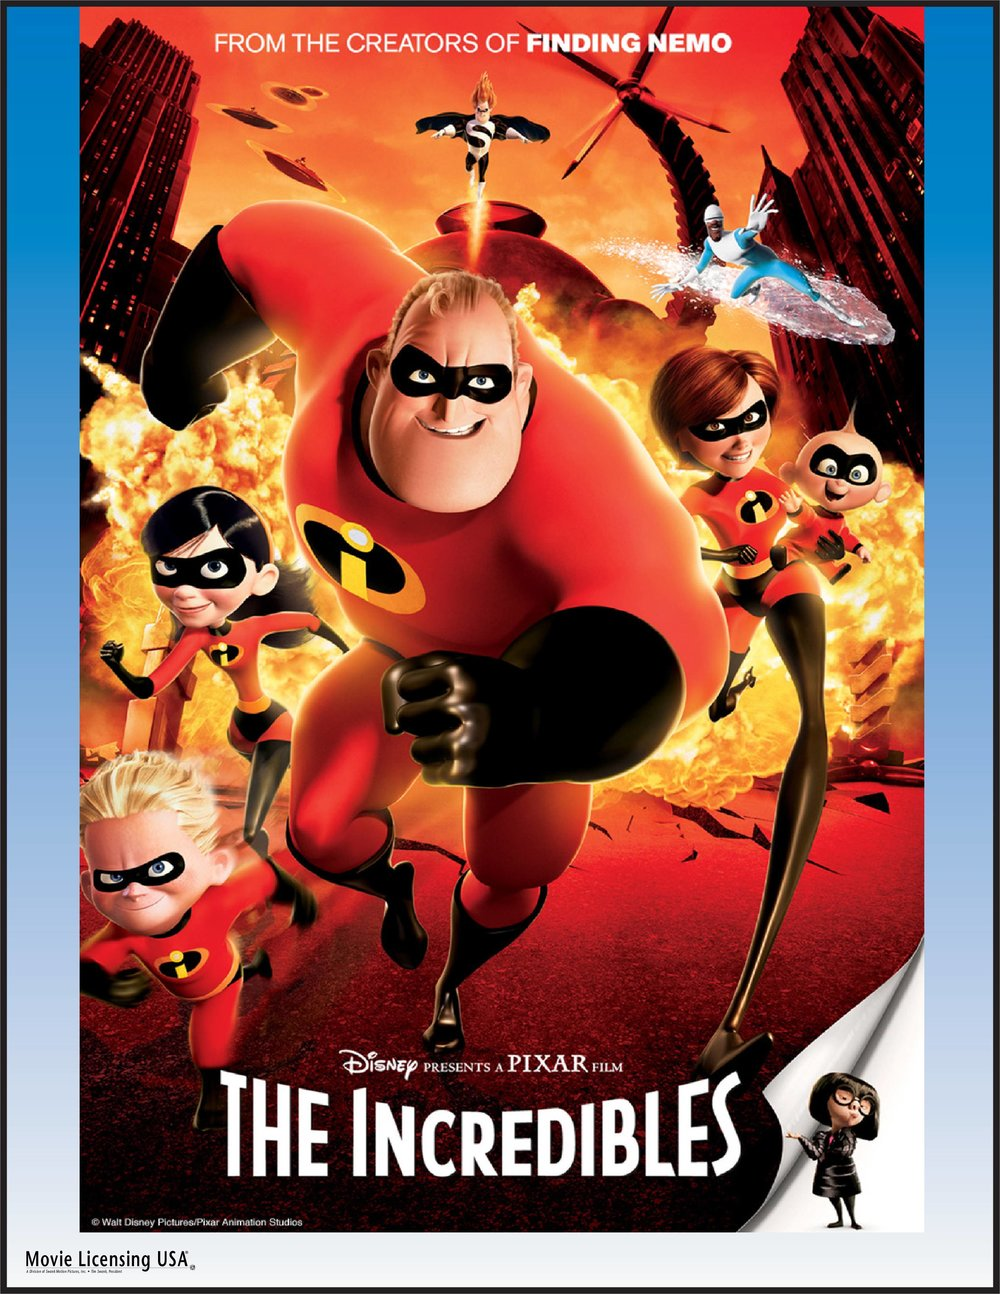 THE_INCREDIBLES_poster no text.jpg